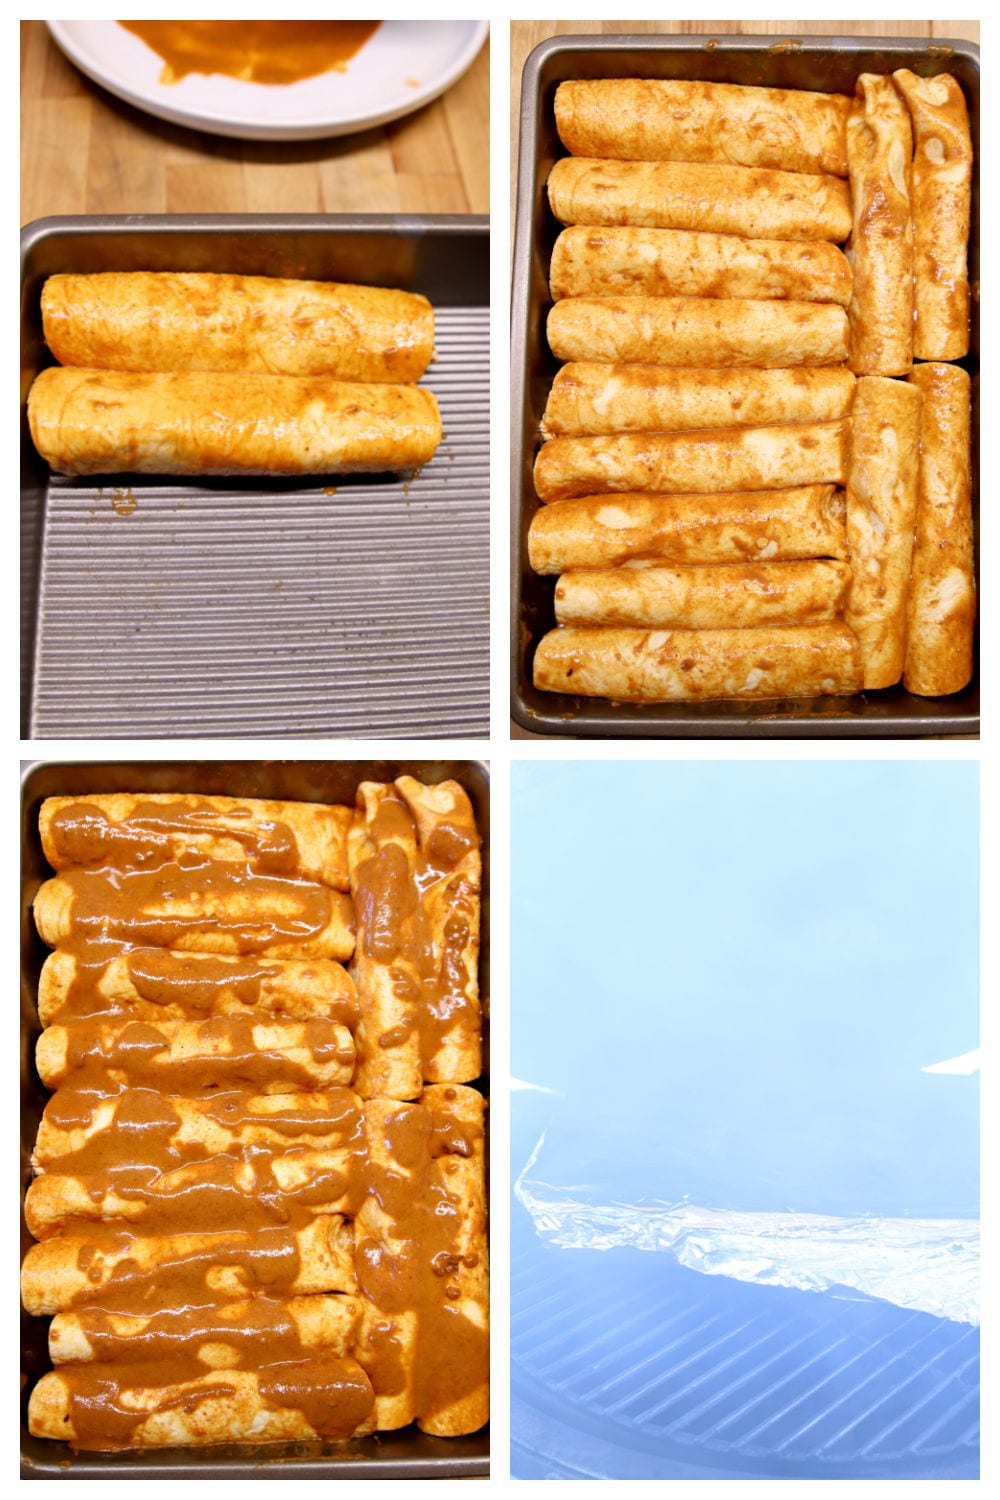 chicken enchiladas, filling the pan, topping with sauce, on the grill covered with foil: collage